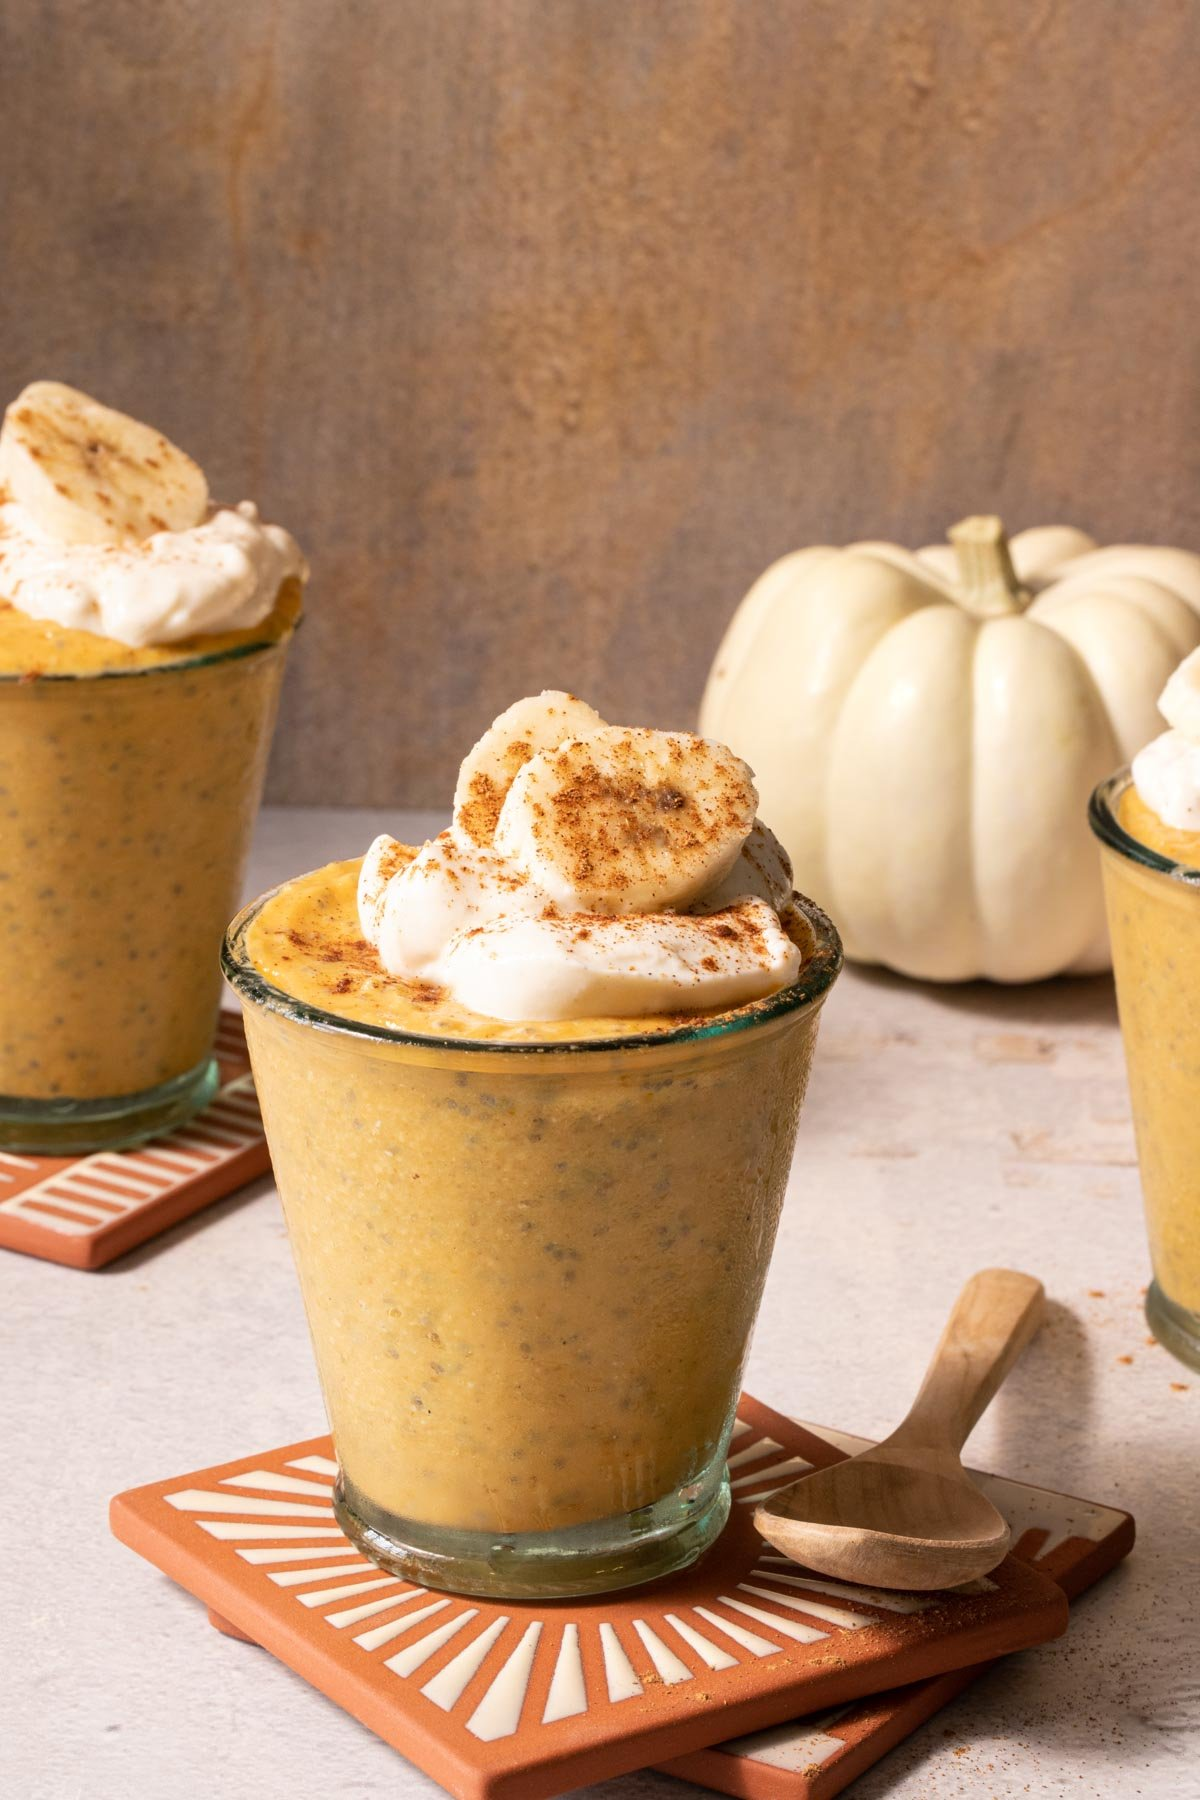 Pumpkin chia pudding in glasses with sliced banana and pumpkins